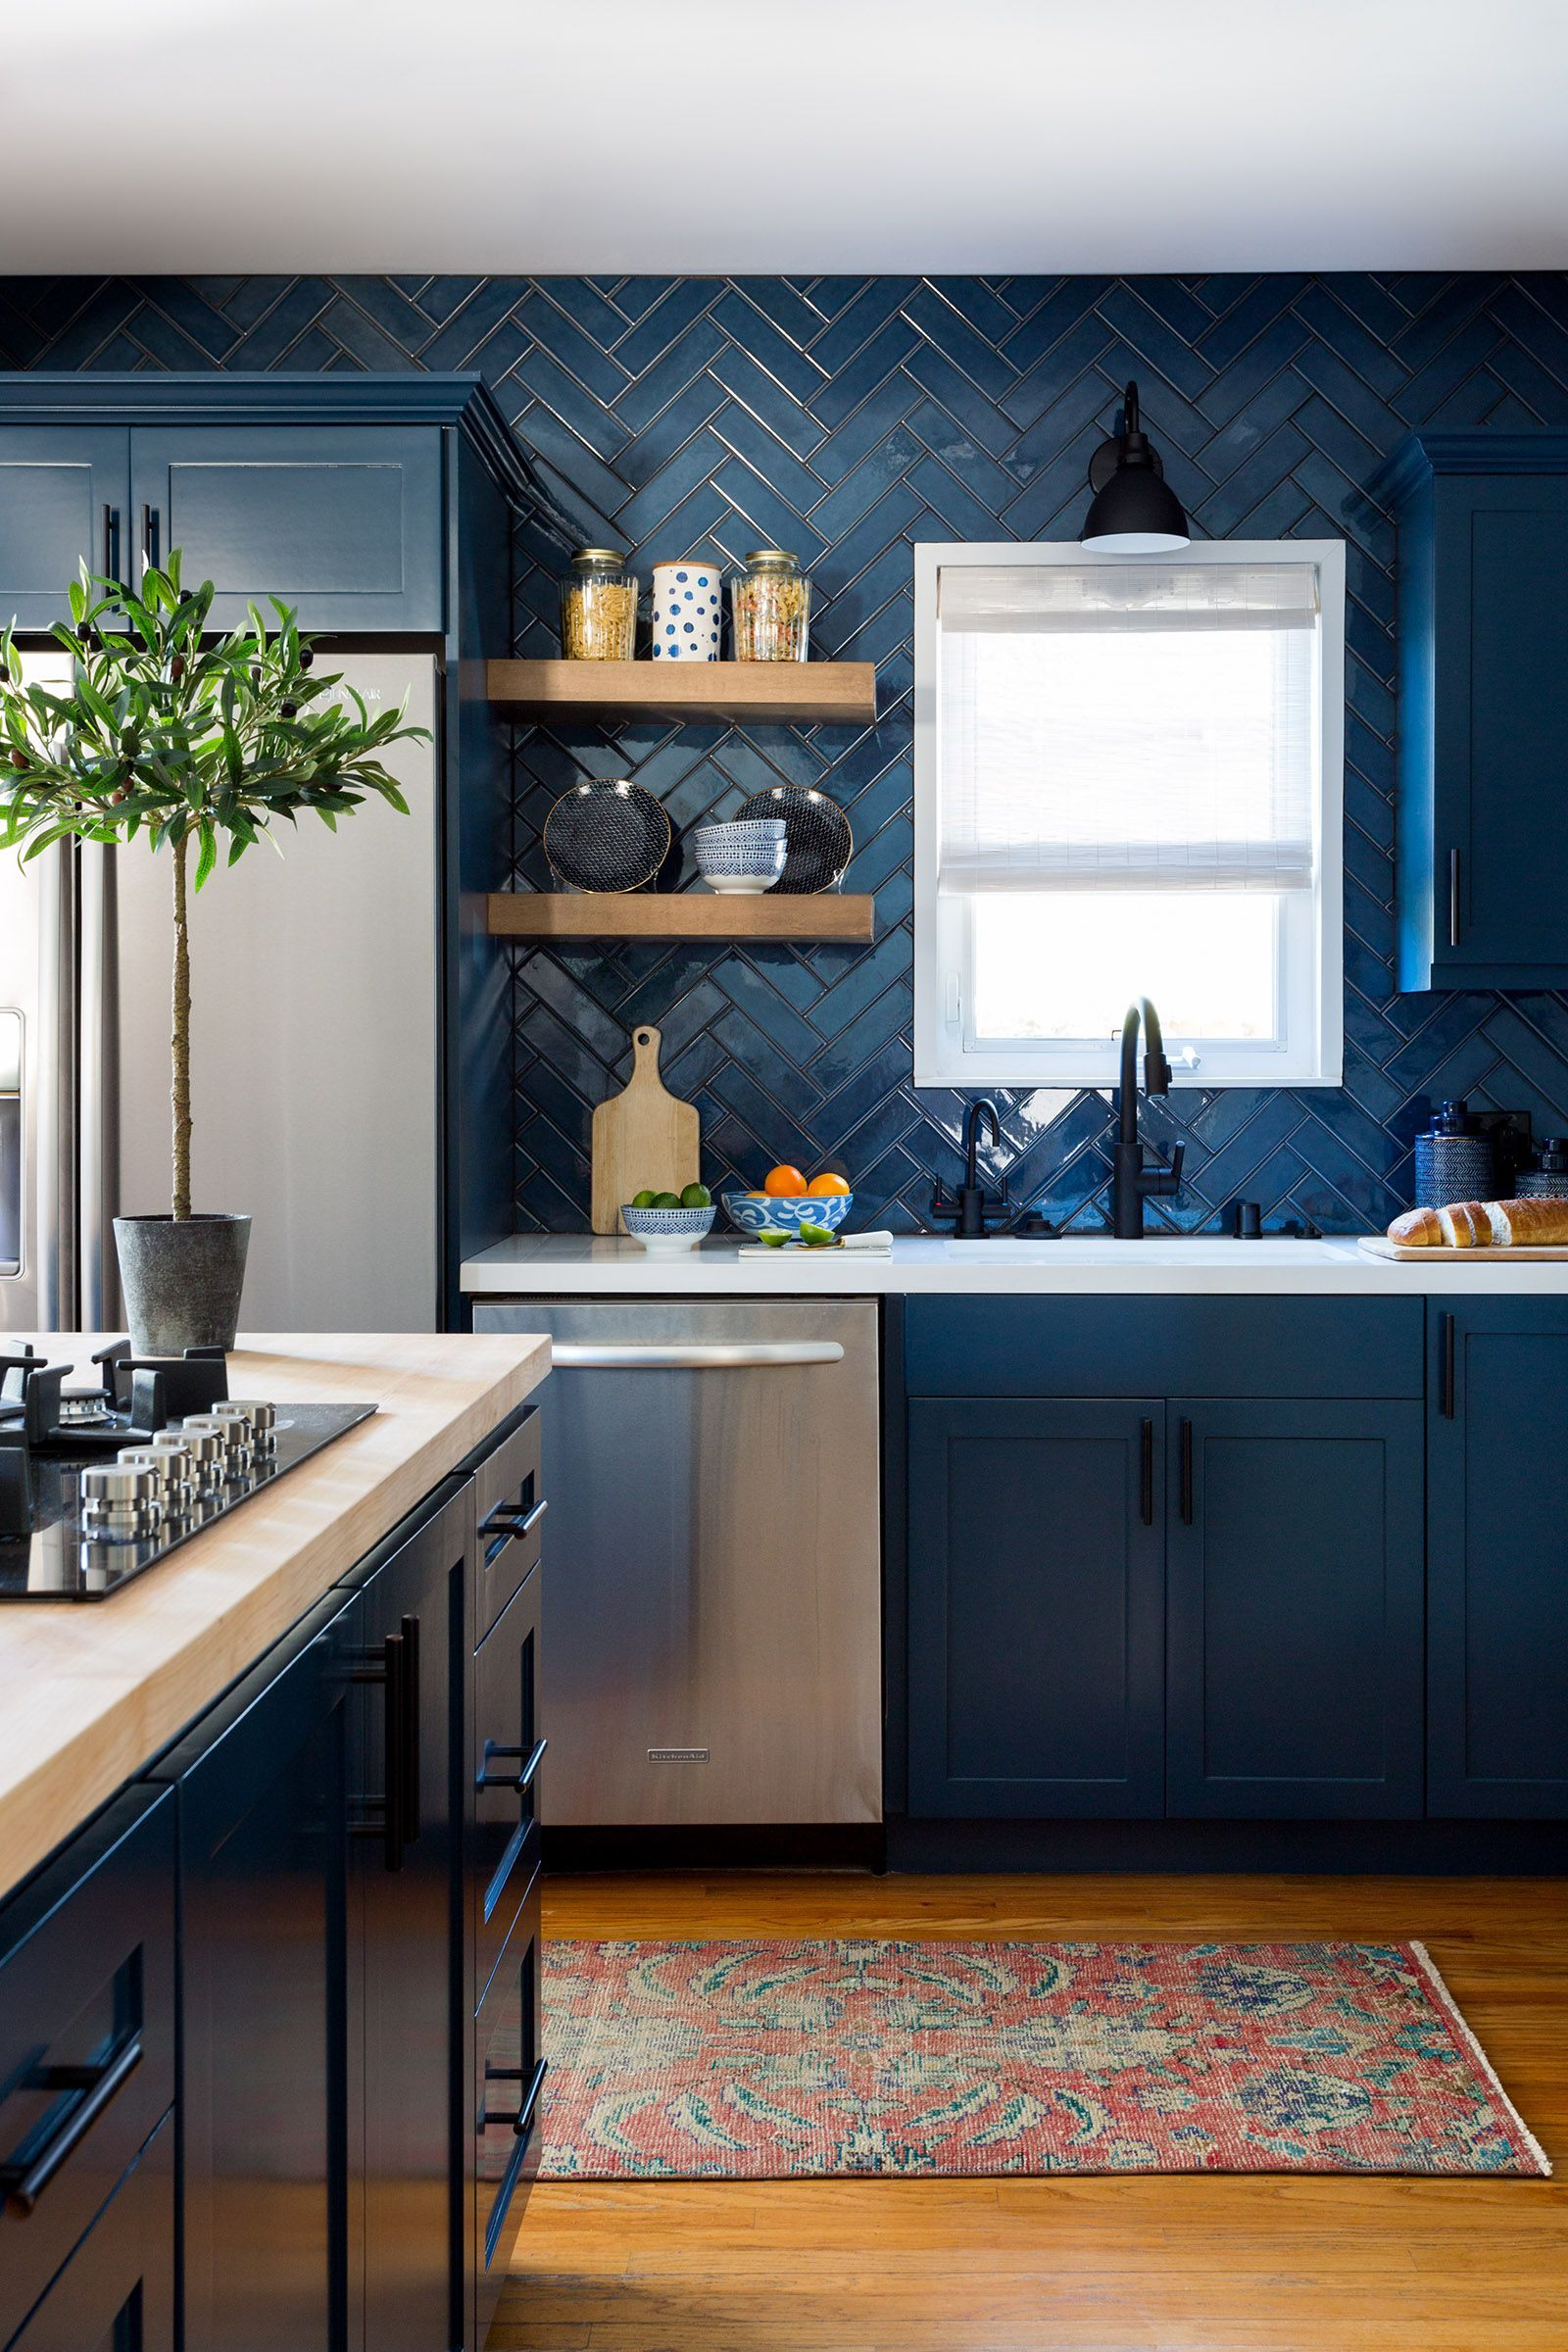 This Moody Blue Monochromatic Kitchen By Jenn Feldman Designs Might Be The Perfect Place To In 2020 Kitchen Cabinet Design Top Kitchen Designs Modern Kitchen Cabinets